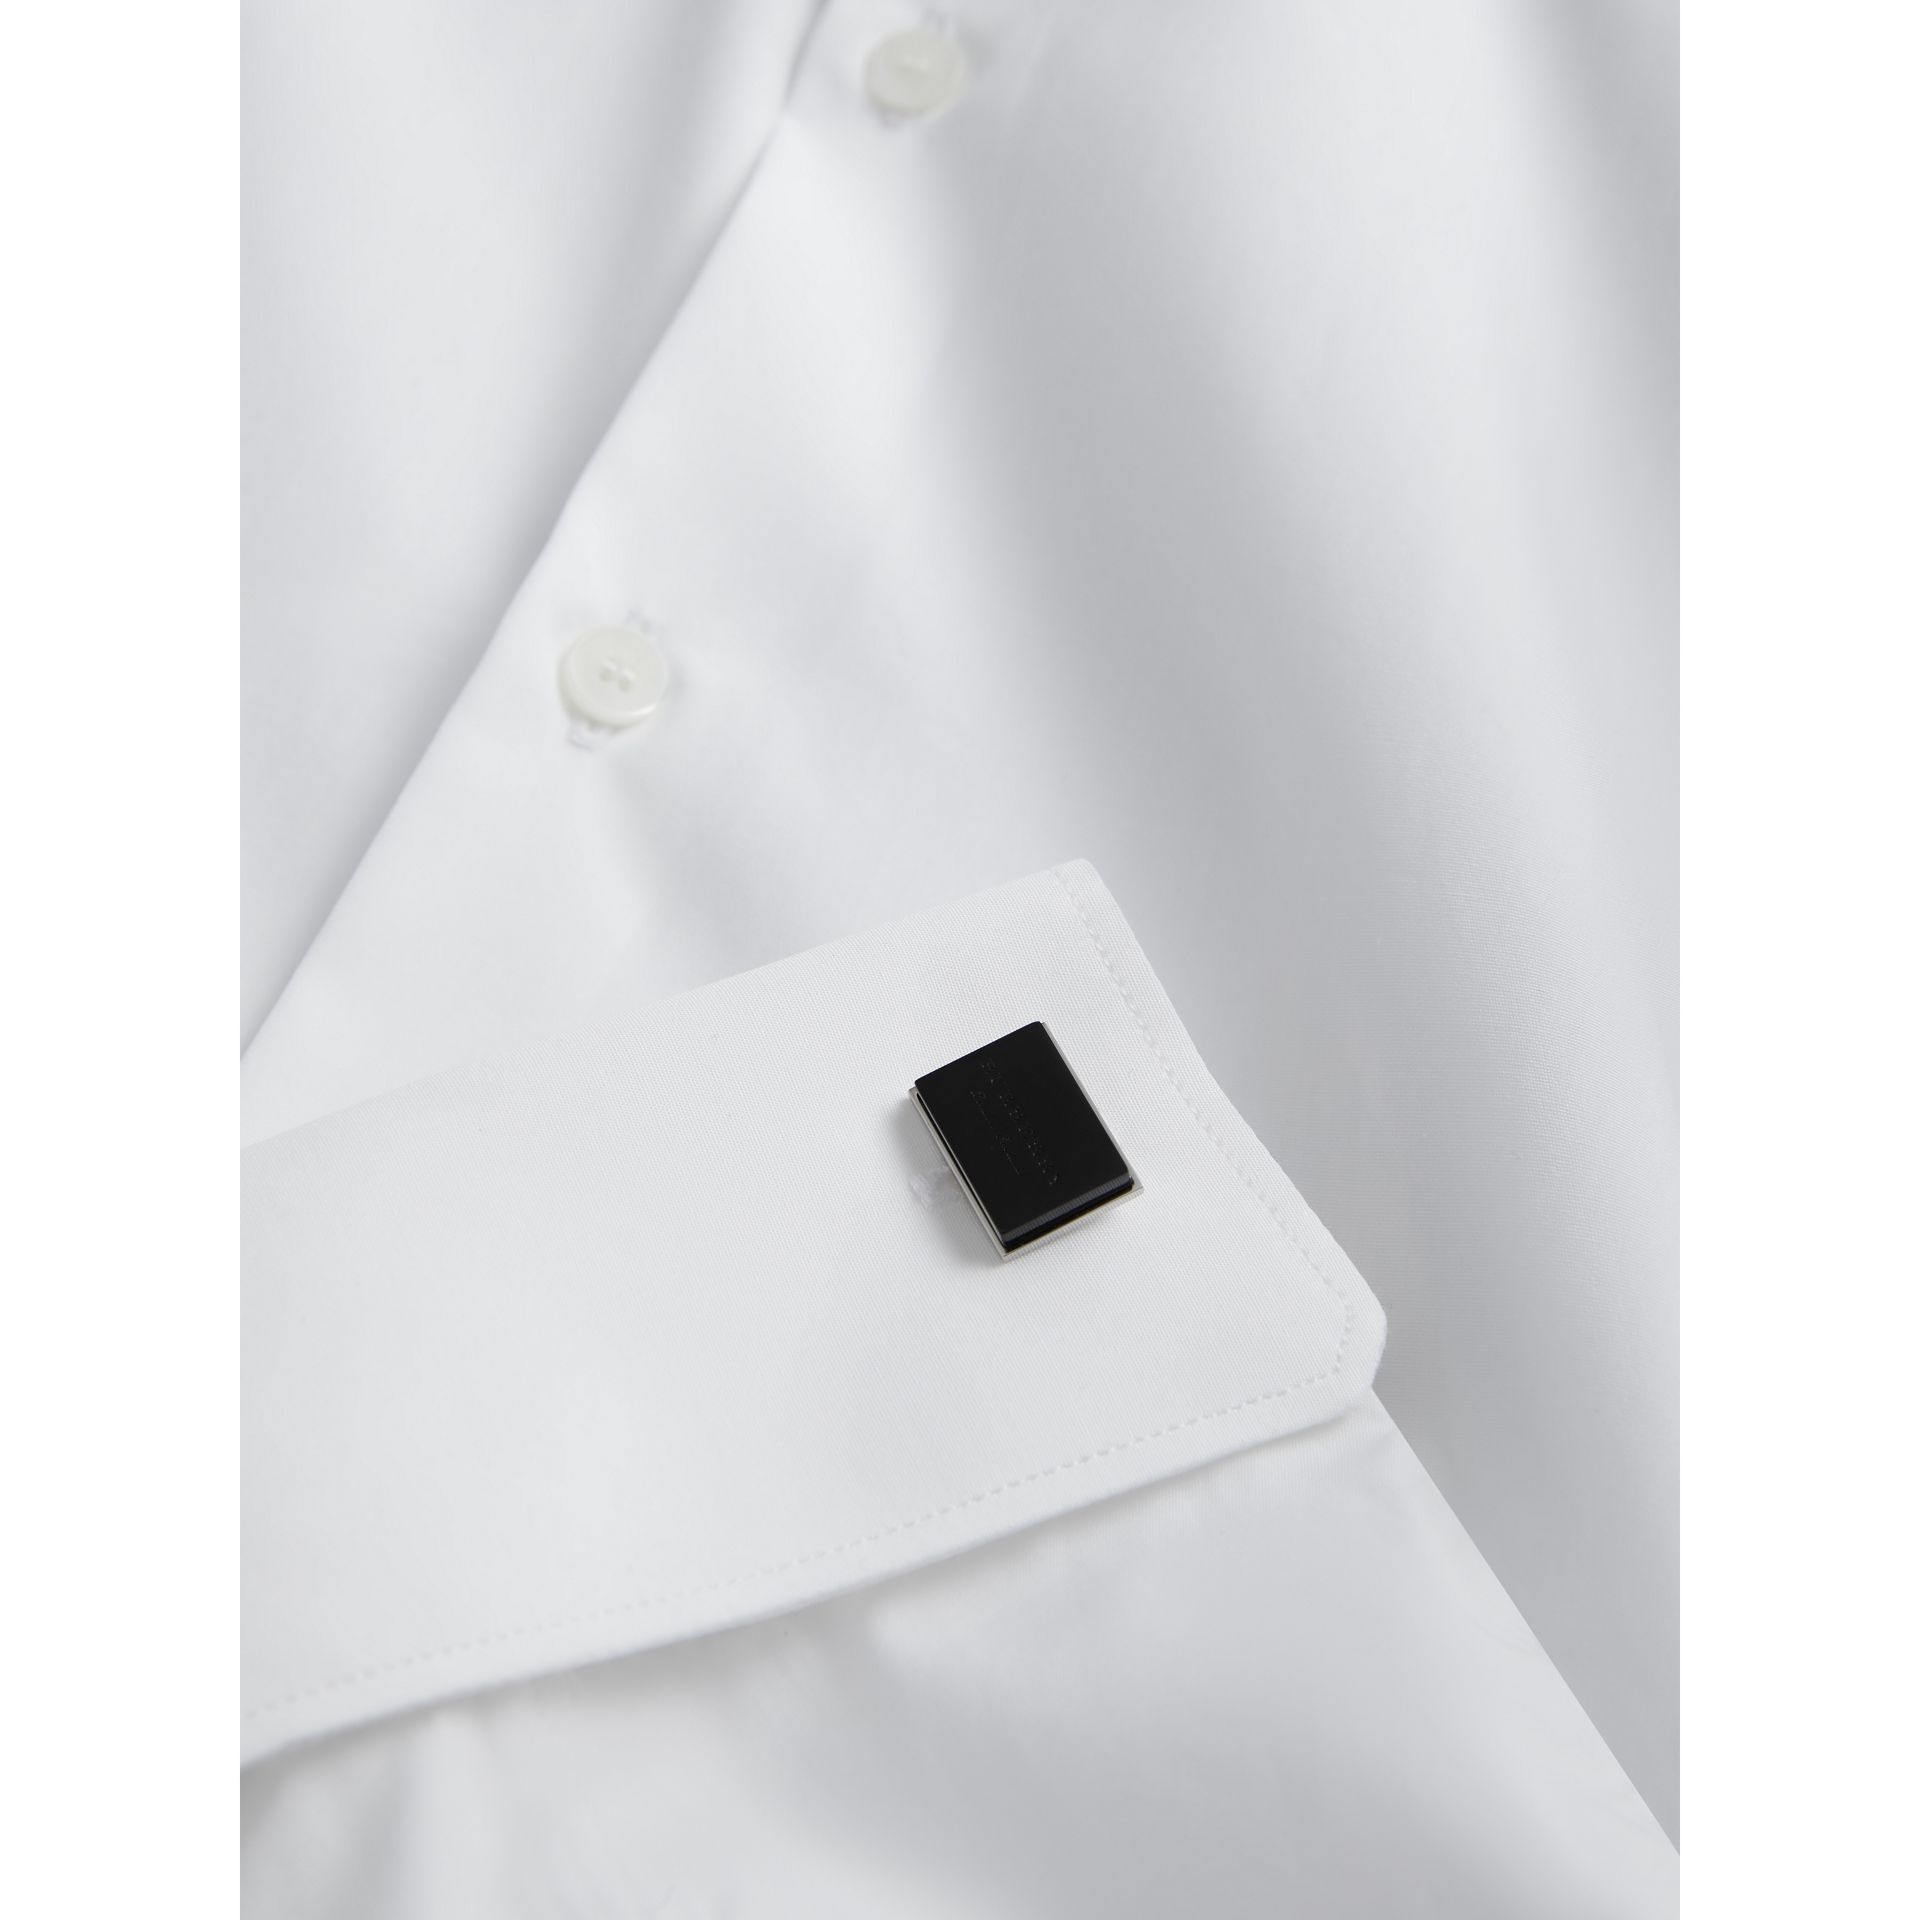 Engraved Enamel Cufflinks in Black - Men | Burberry - gallery image 2